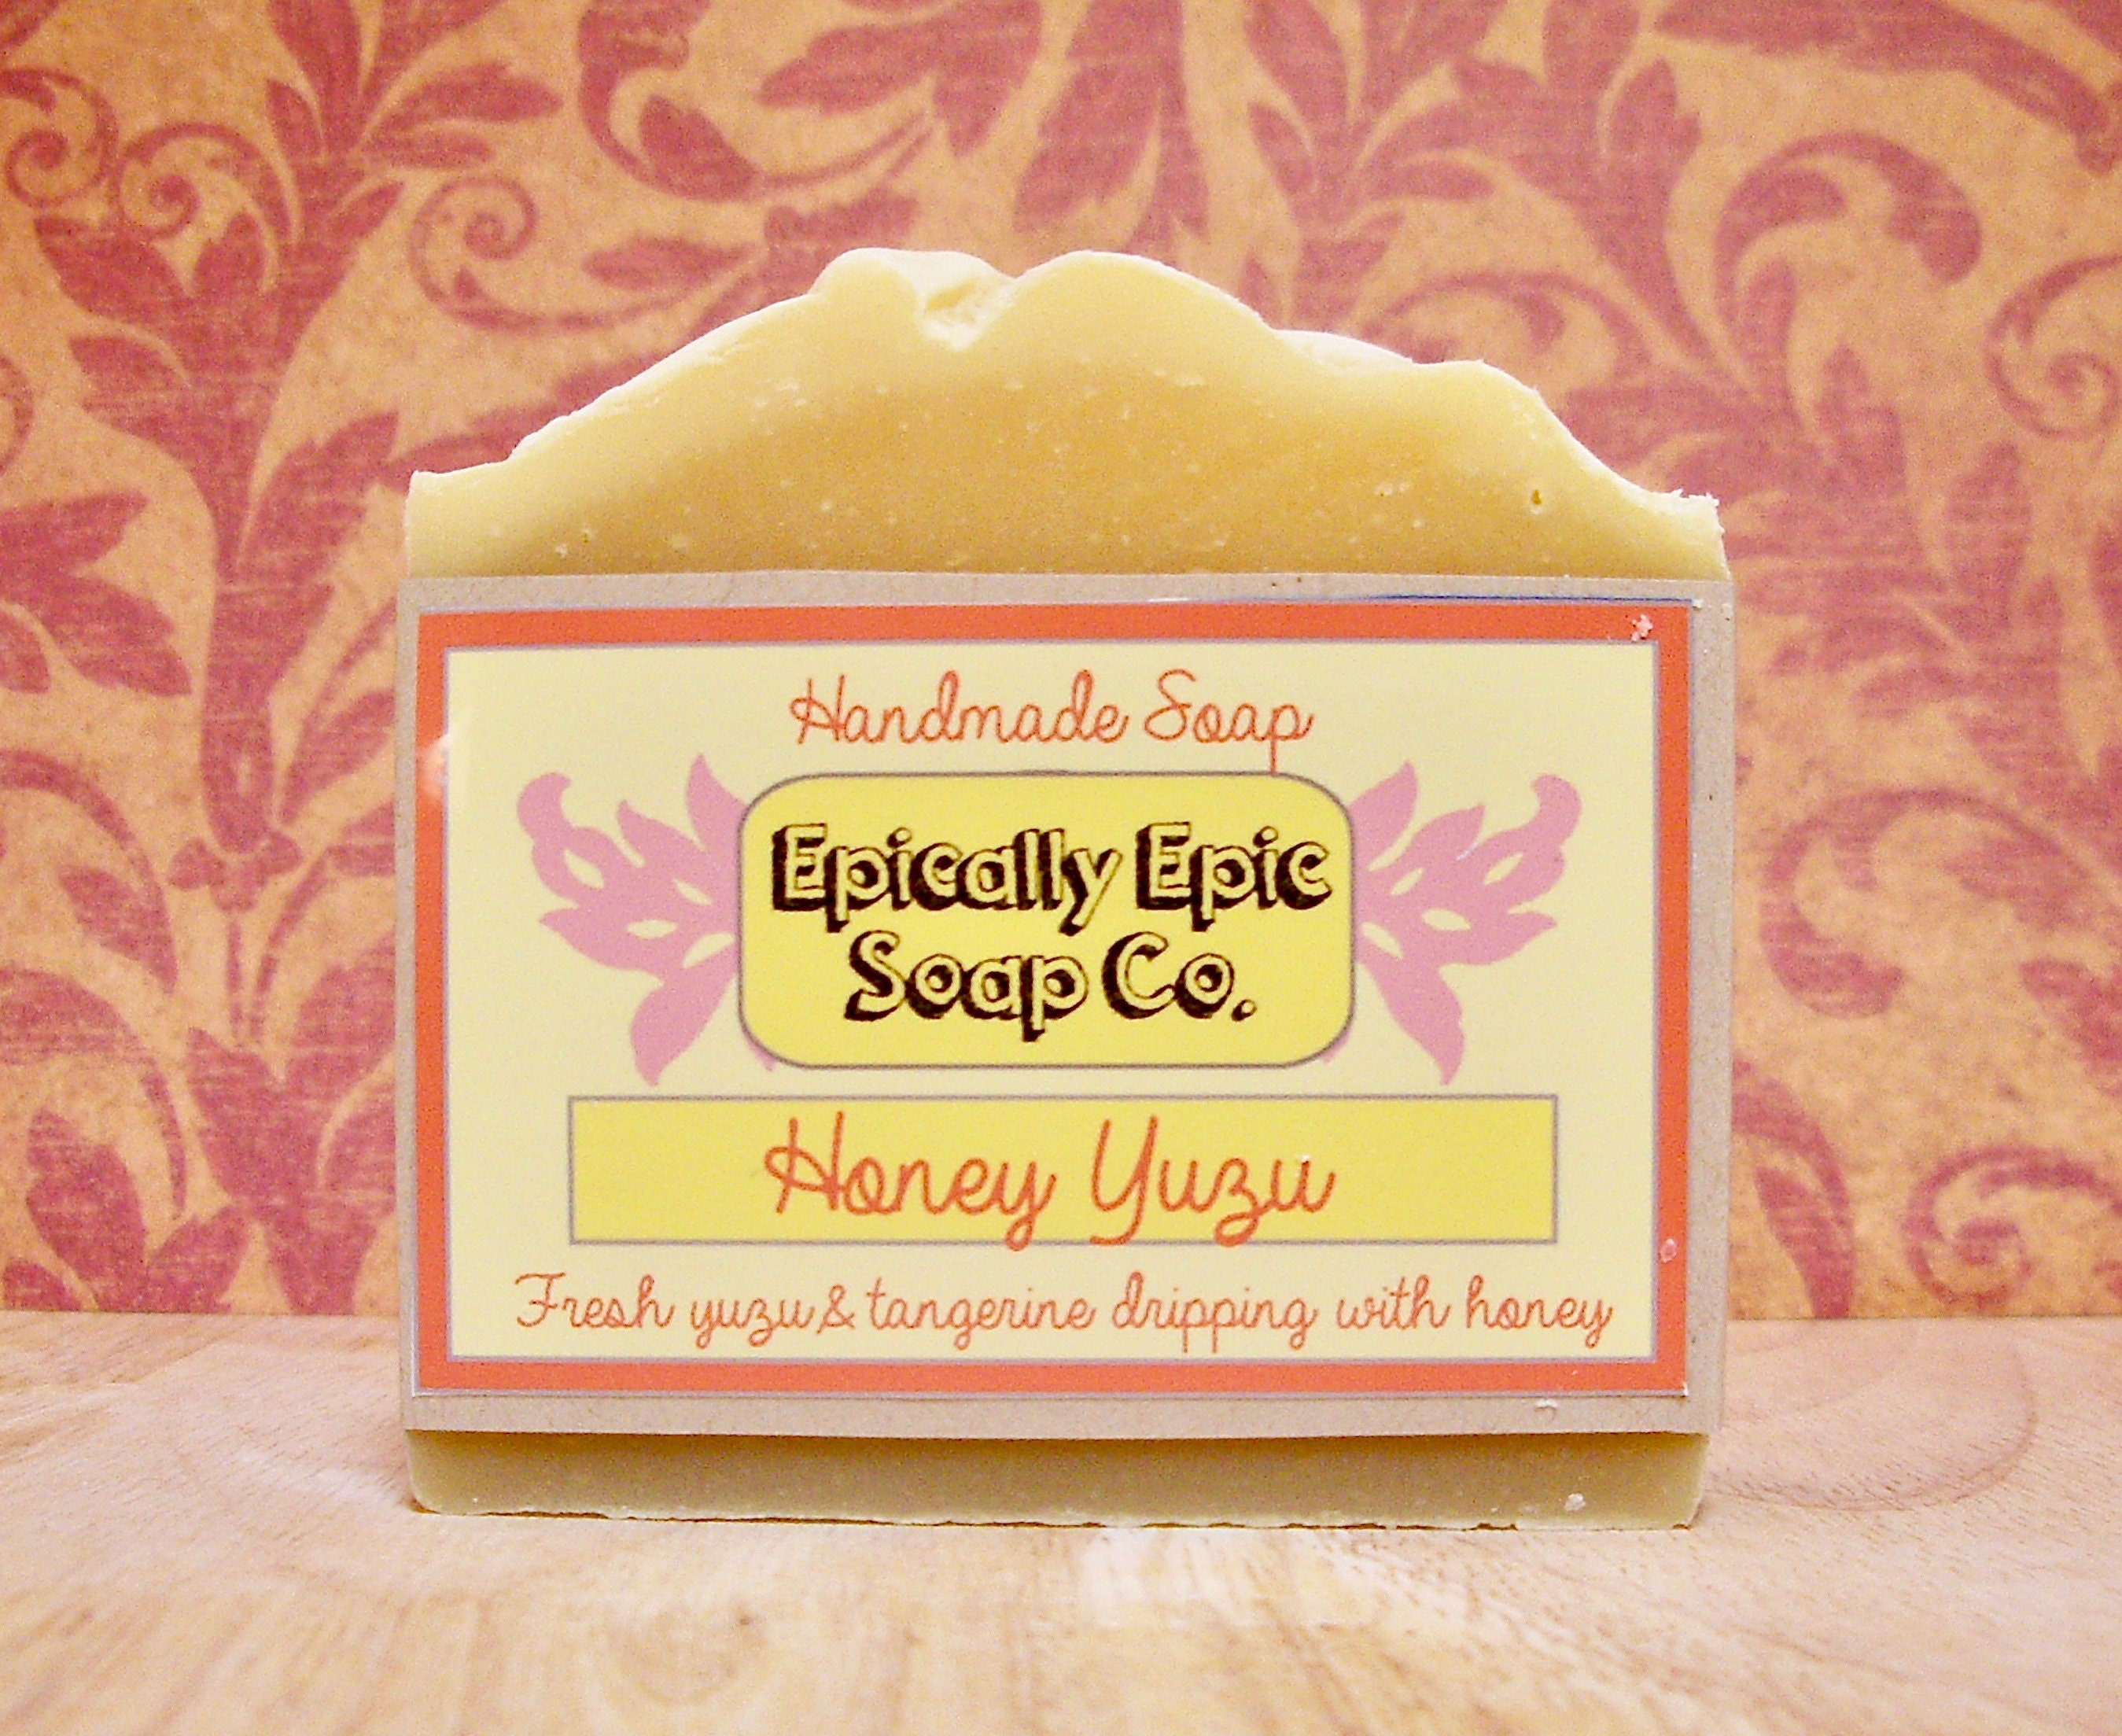 Honey,Yuzu,Cold,Process,Soap,-,Vegan,Handmade,Bath_And_Beauty,soap,cold_process_soap,handmade_soap,epically_epic_soap,bar_soap,natural_soap,homemade_soap,glycerin_soap,into_the_summer,honey_soap,vegan_honey,yuzu_tangerine,grapefruit_soap,olive oil,organic palm kernel oil,castor oil,sodium hydrox